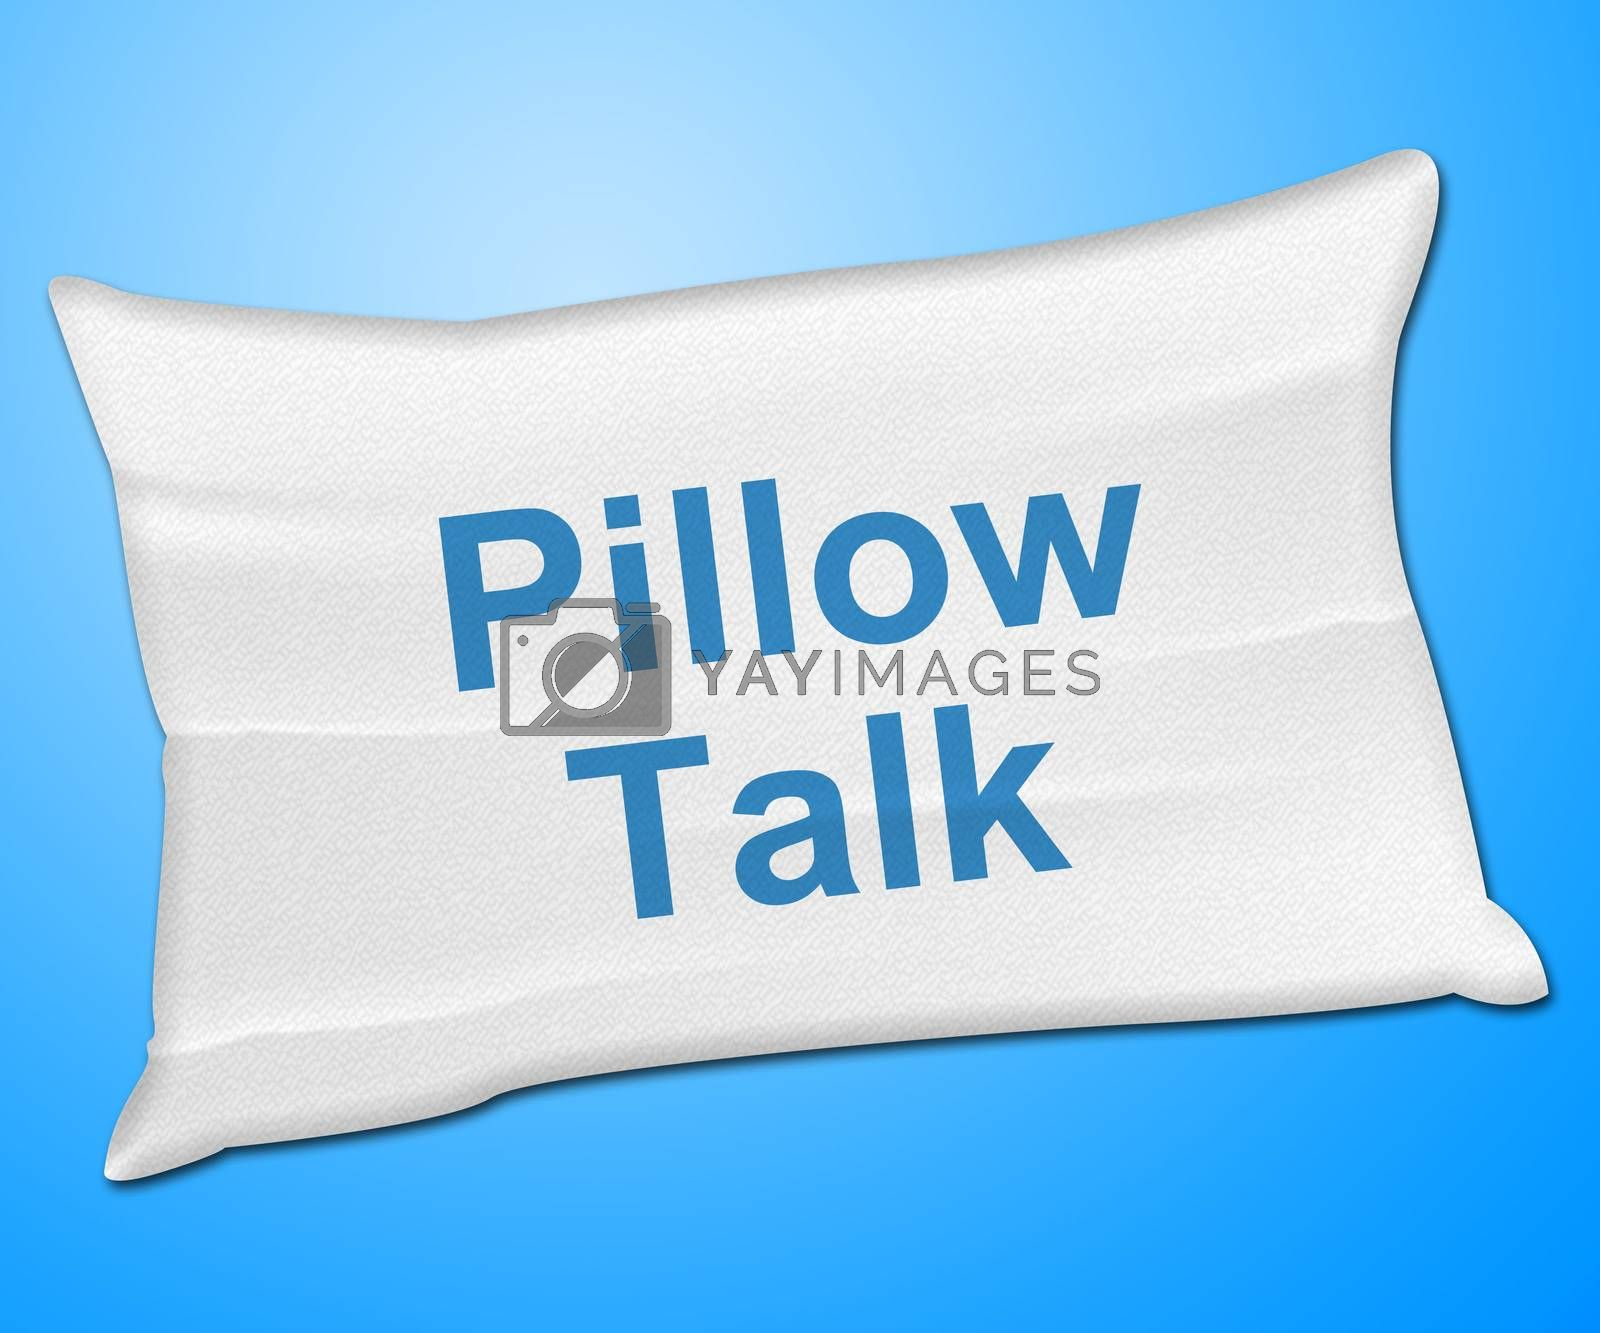 Pillow Talk Means Talking Conversation And Discussion by stuartmiles